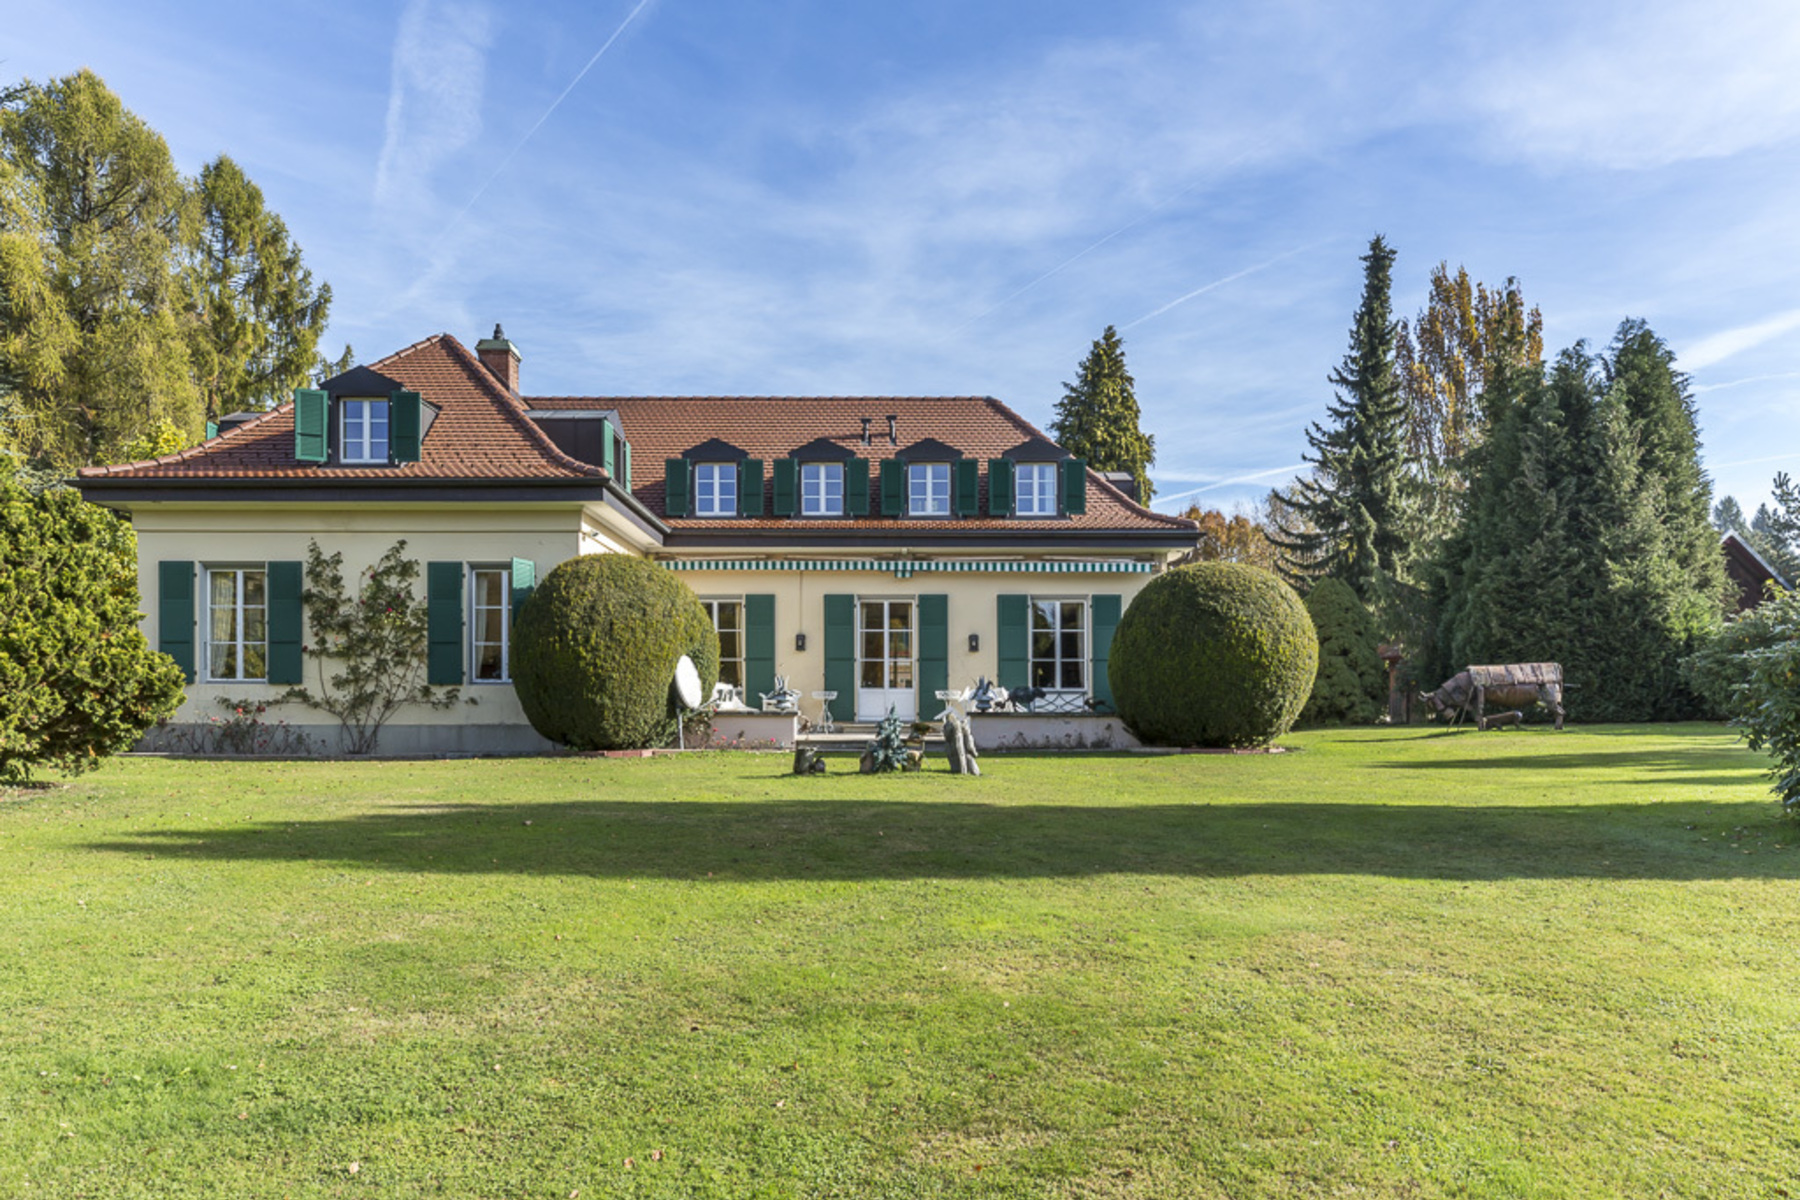 Single Family Home for Sale at Classical property in a leafy setting on the edge of town Epalinges, Epalinges, Vaud, 1066 Switzerland